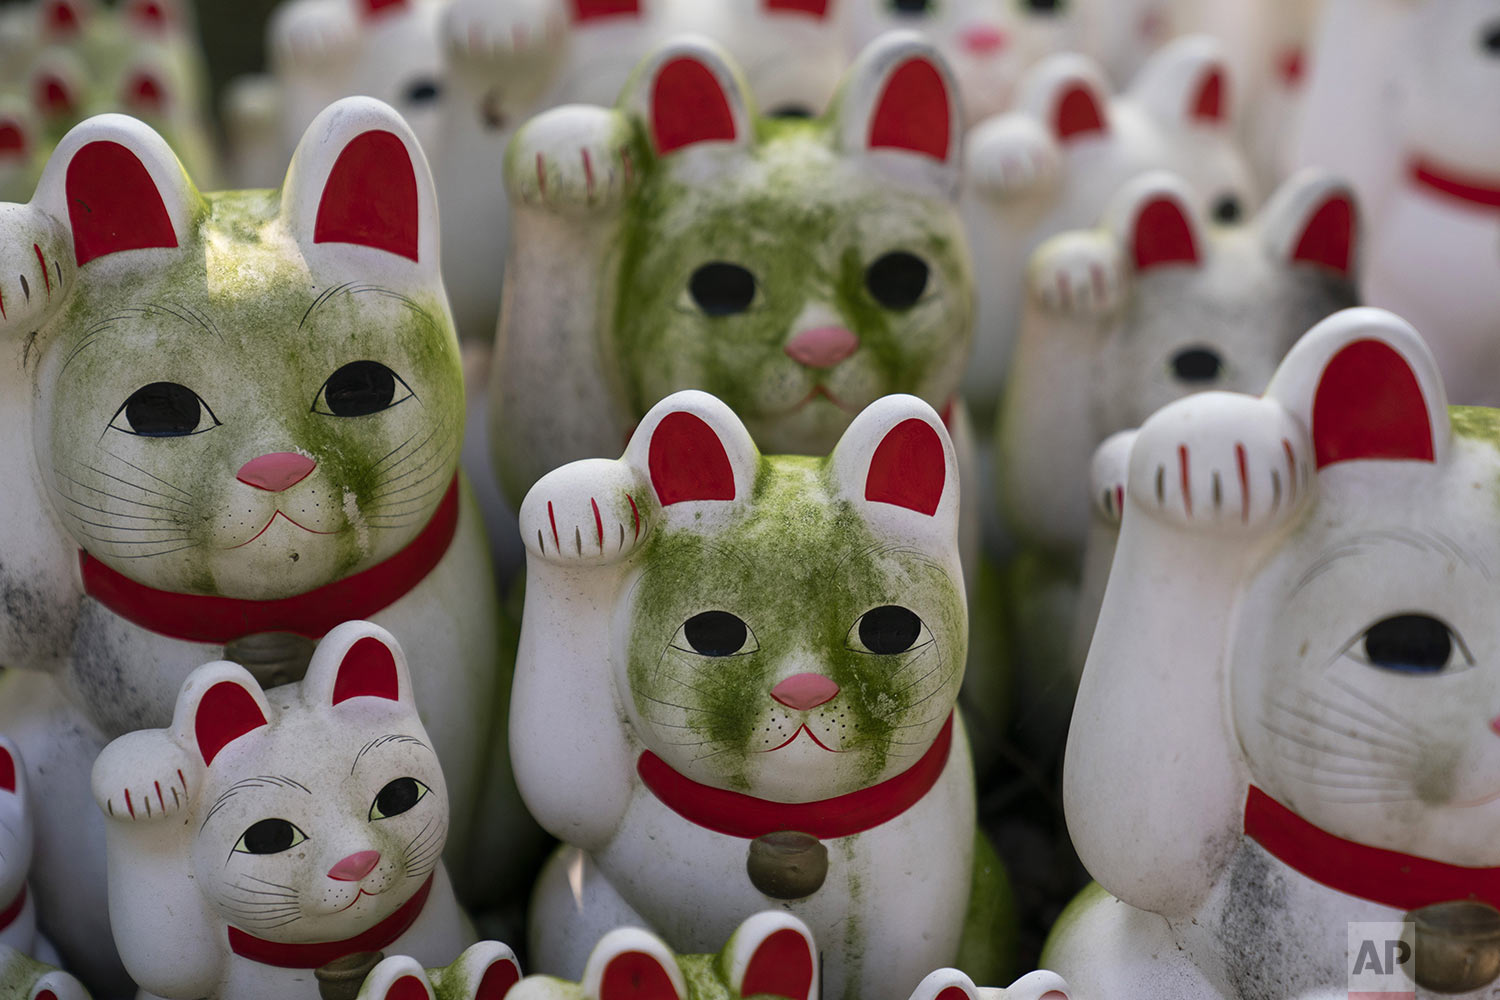 Stained beckoning cat figurines are seen at Gotokuji Temple in Tokyo, Tuesday, June 25, 2019. (AP Photo/Jae C. Hong)